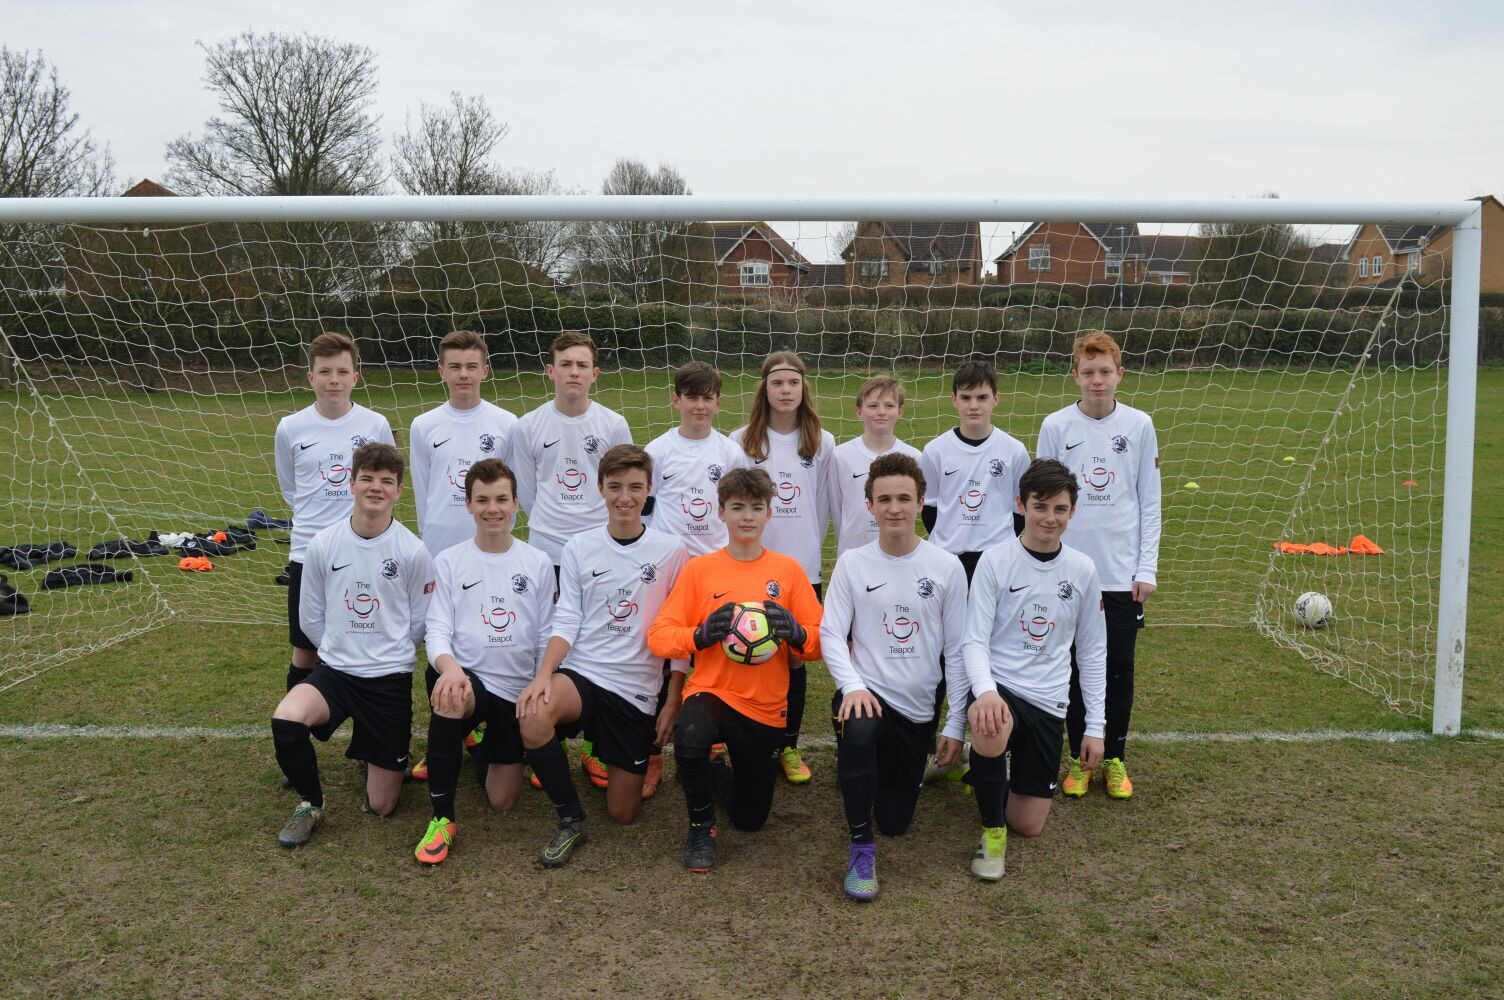 The Under 15's Eagles